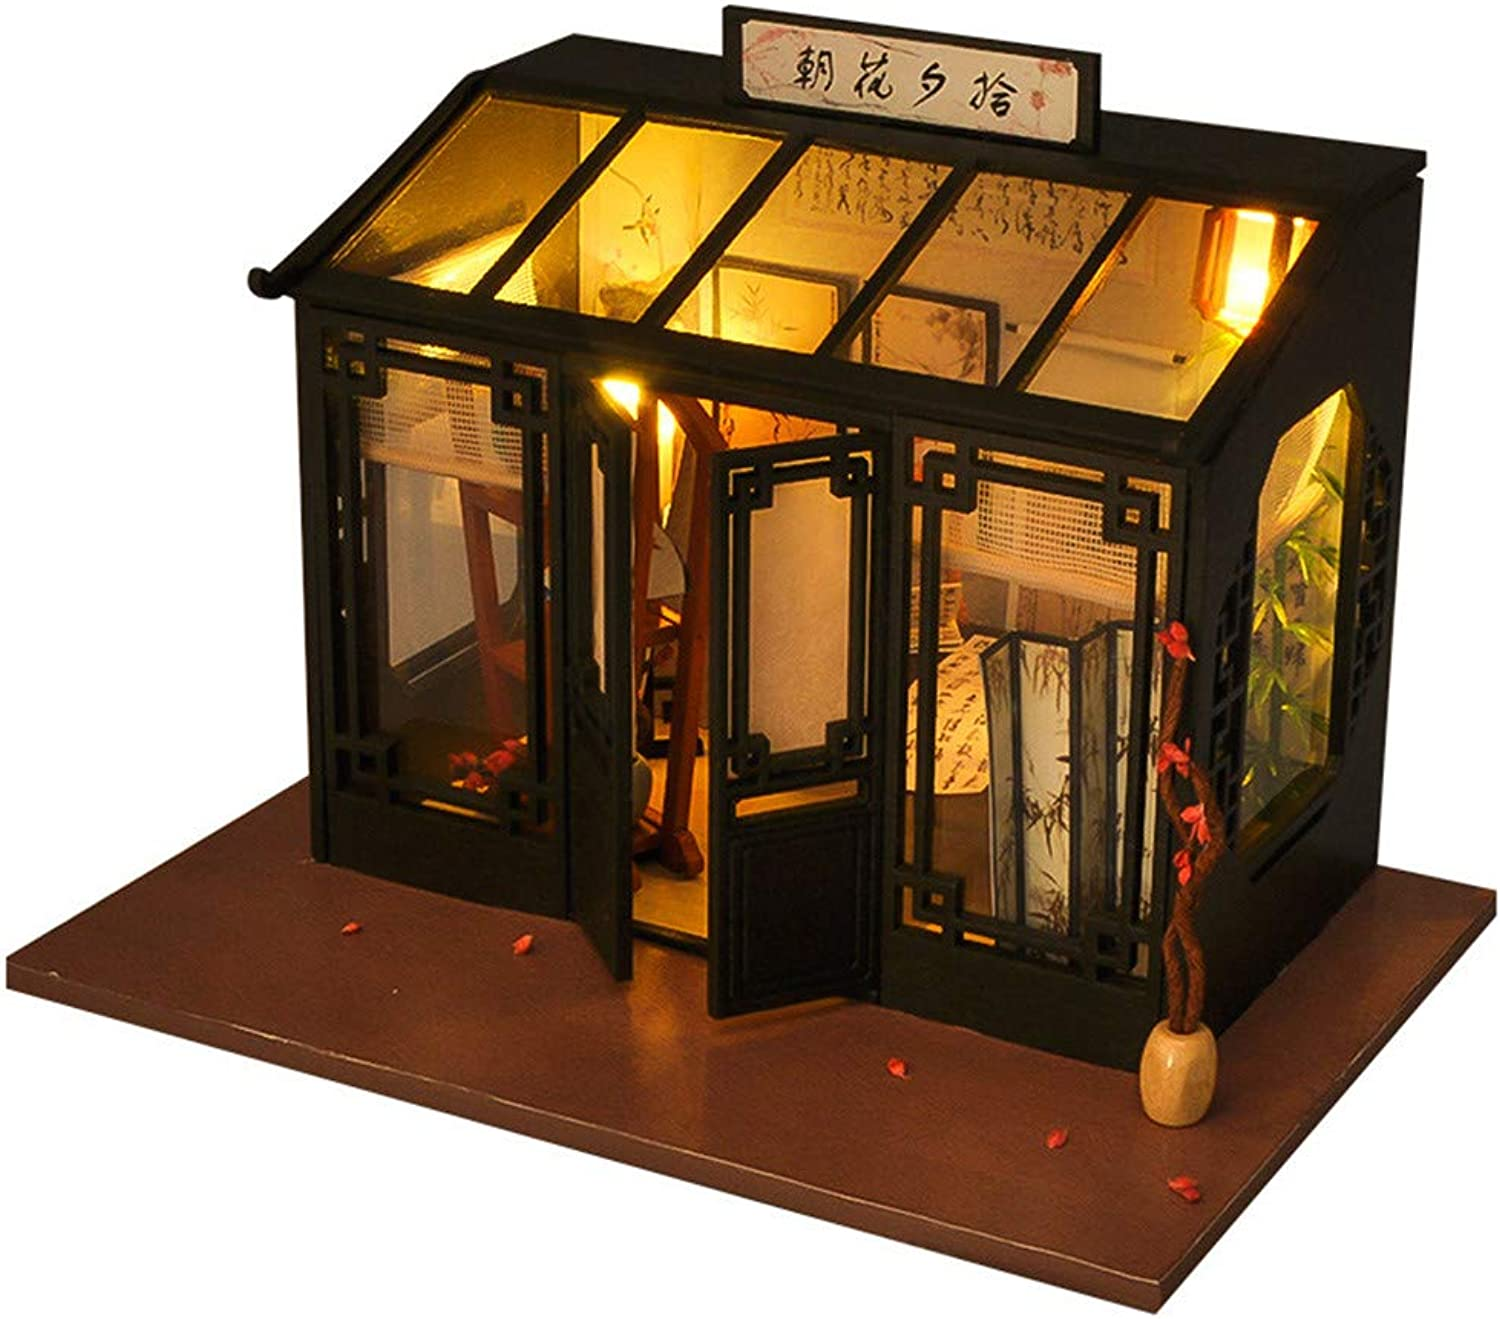 Dollhouse Miniature DIY House, Creative Handmade Diy Cabin Model World Vintage Shops Series Wooden Dolls House with Furniture and Accessories, Educational Toys for Girls  Mini Hou